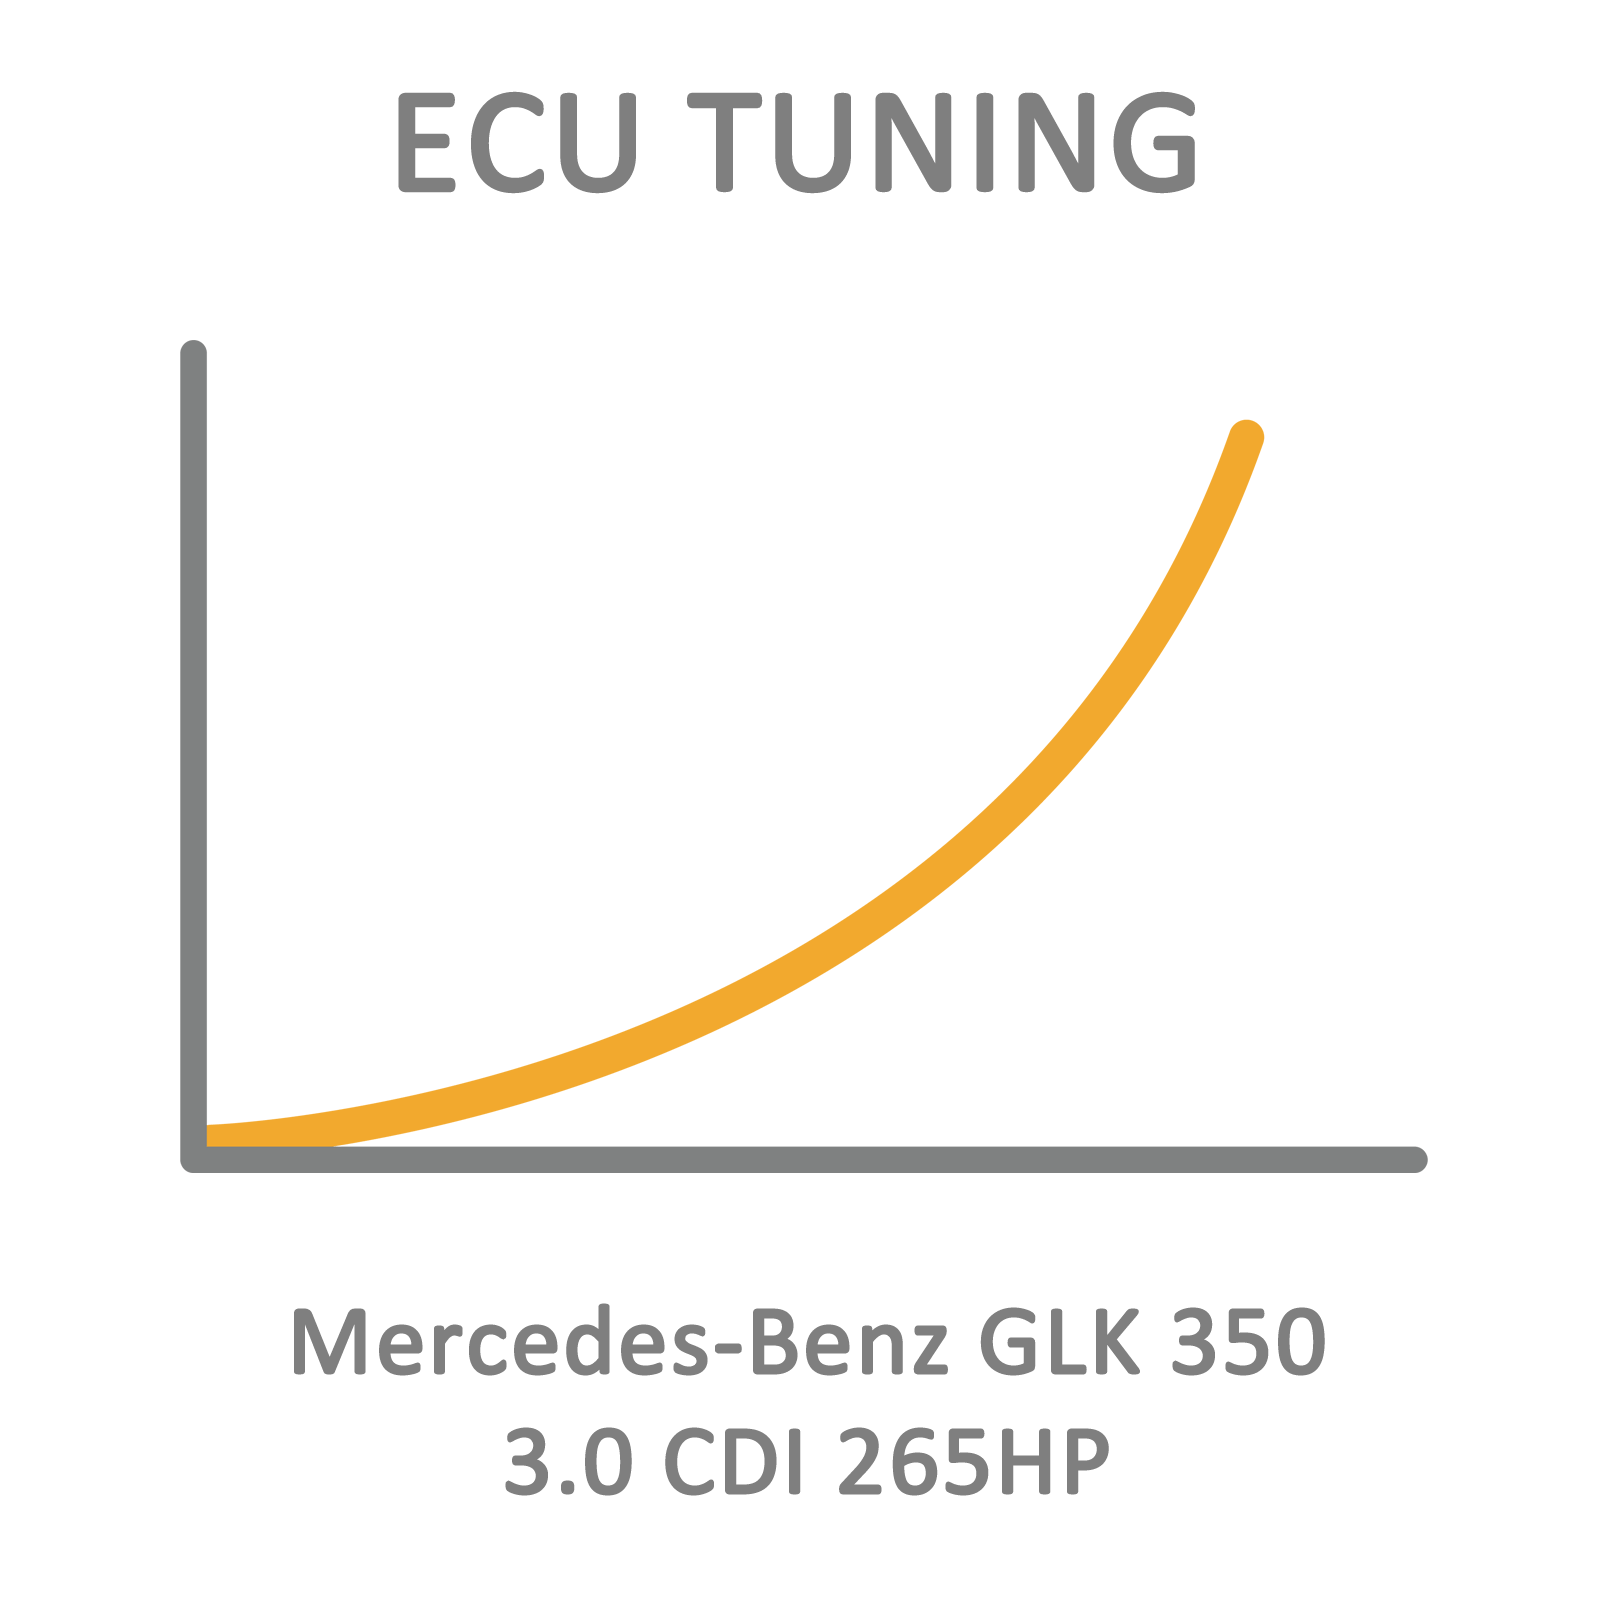 Mercedes-Benz GLK 350 3.0 CDI 265HP ECU Tuning Remapping